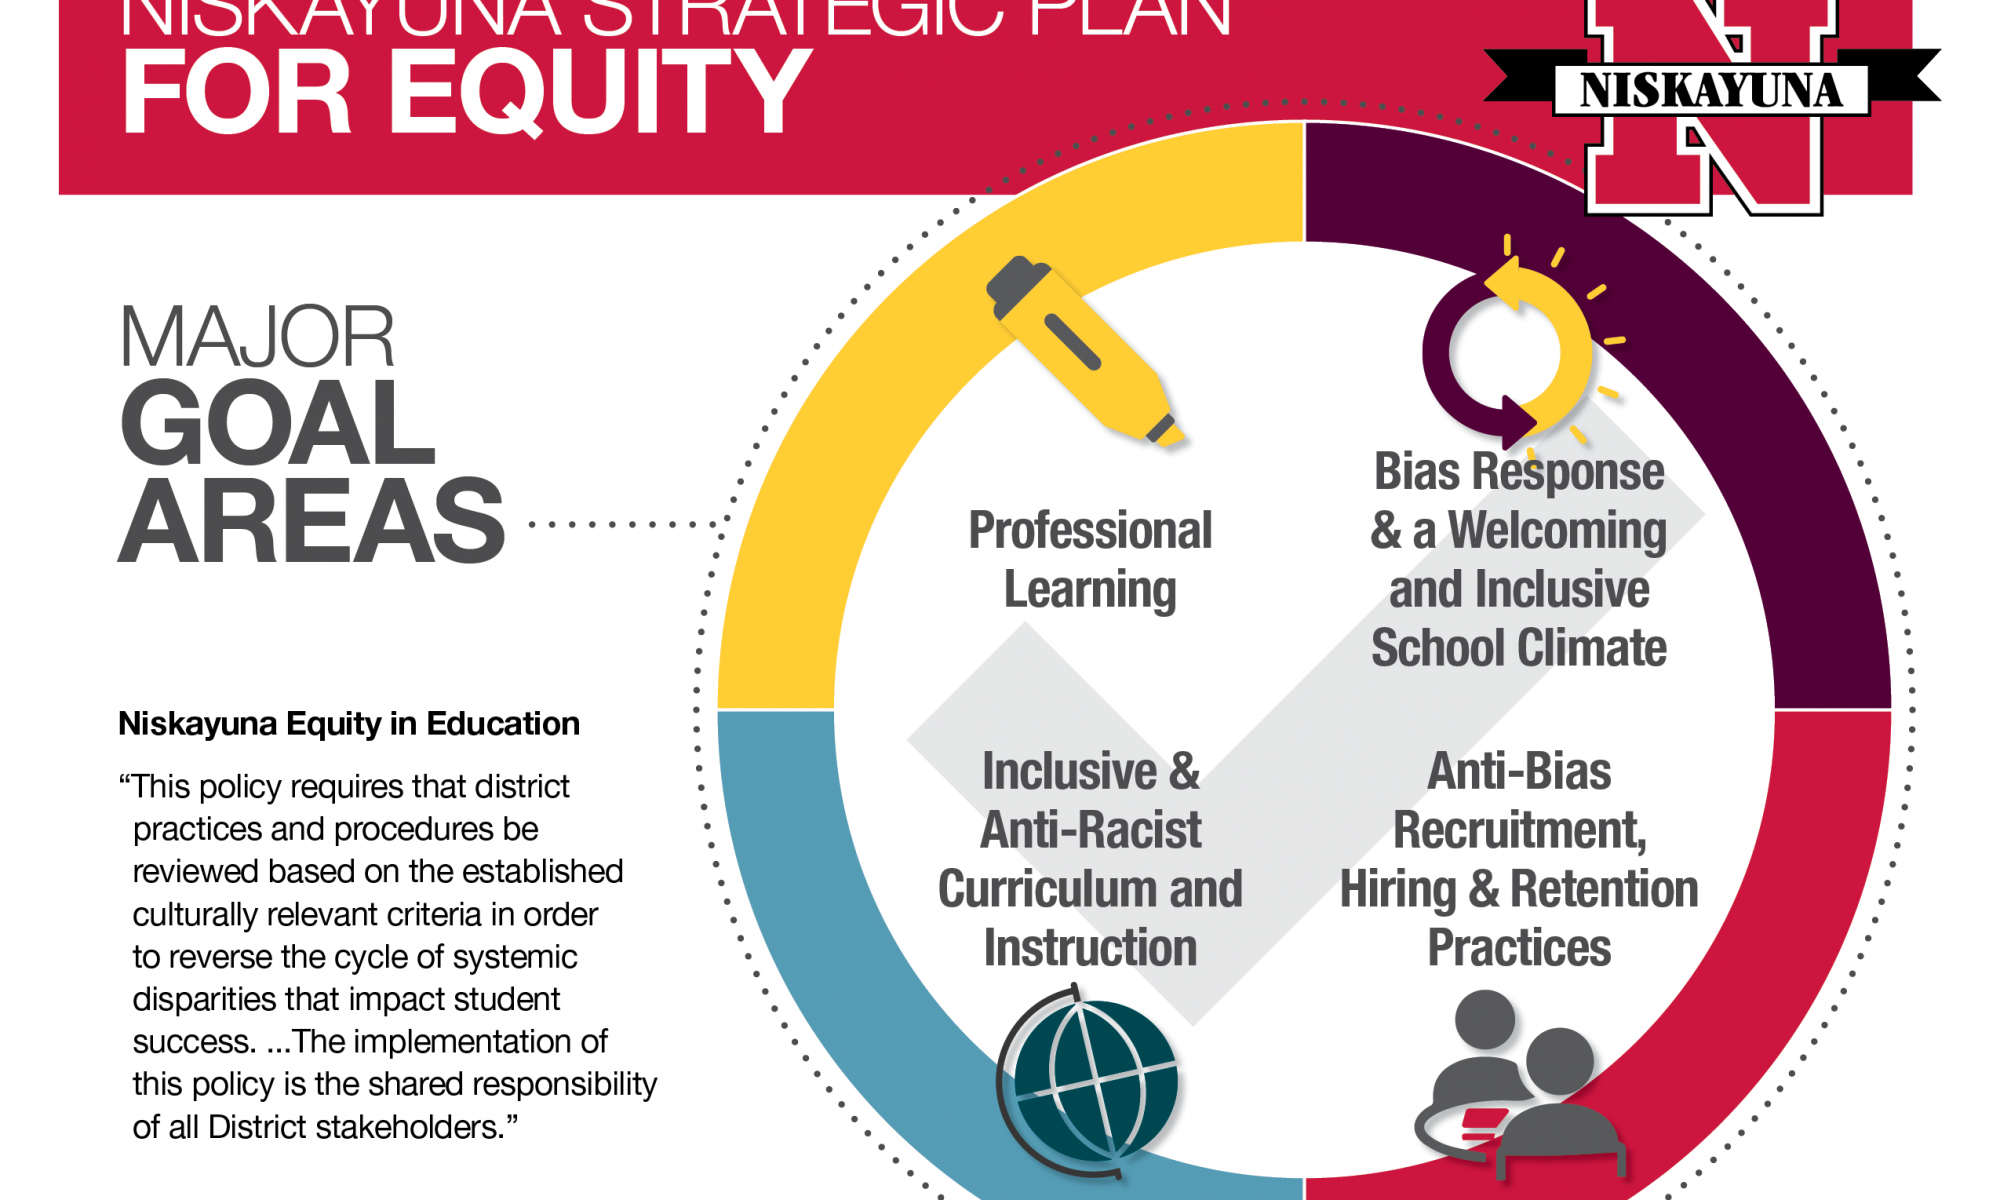 Strategic Plan for Equity Graphic Part 1